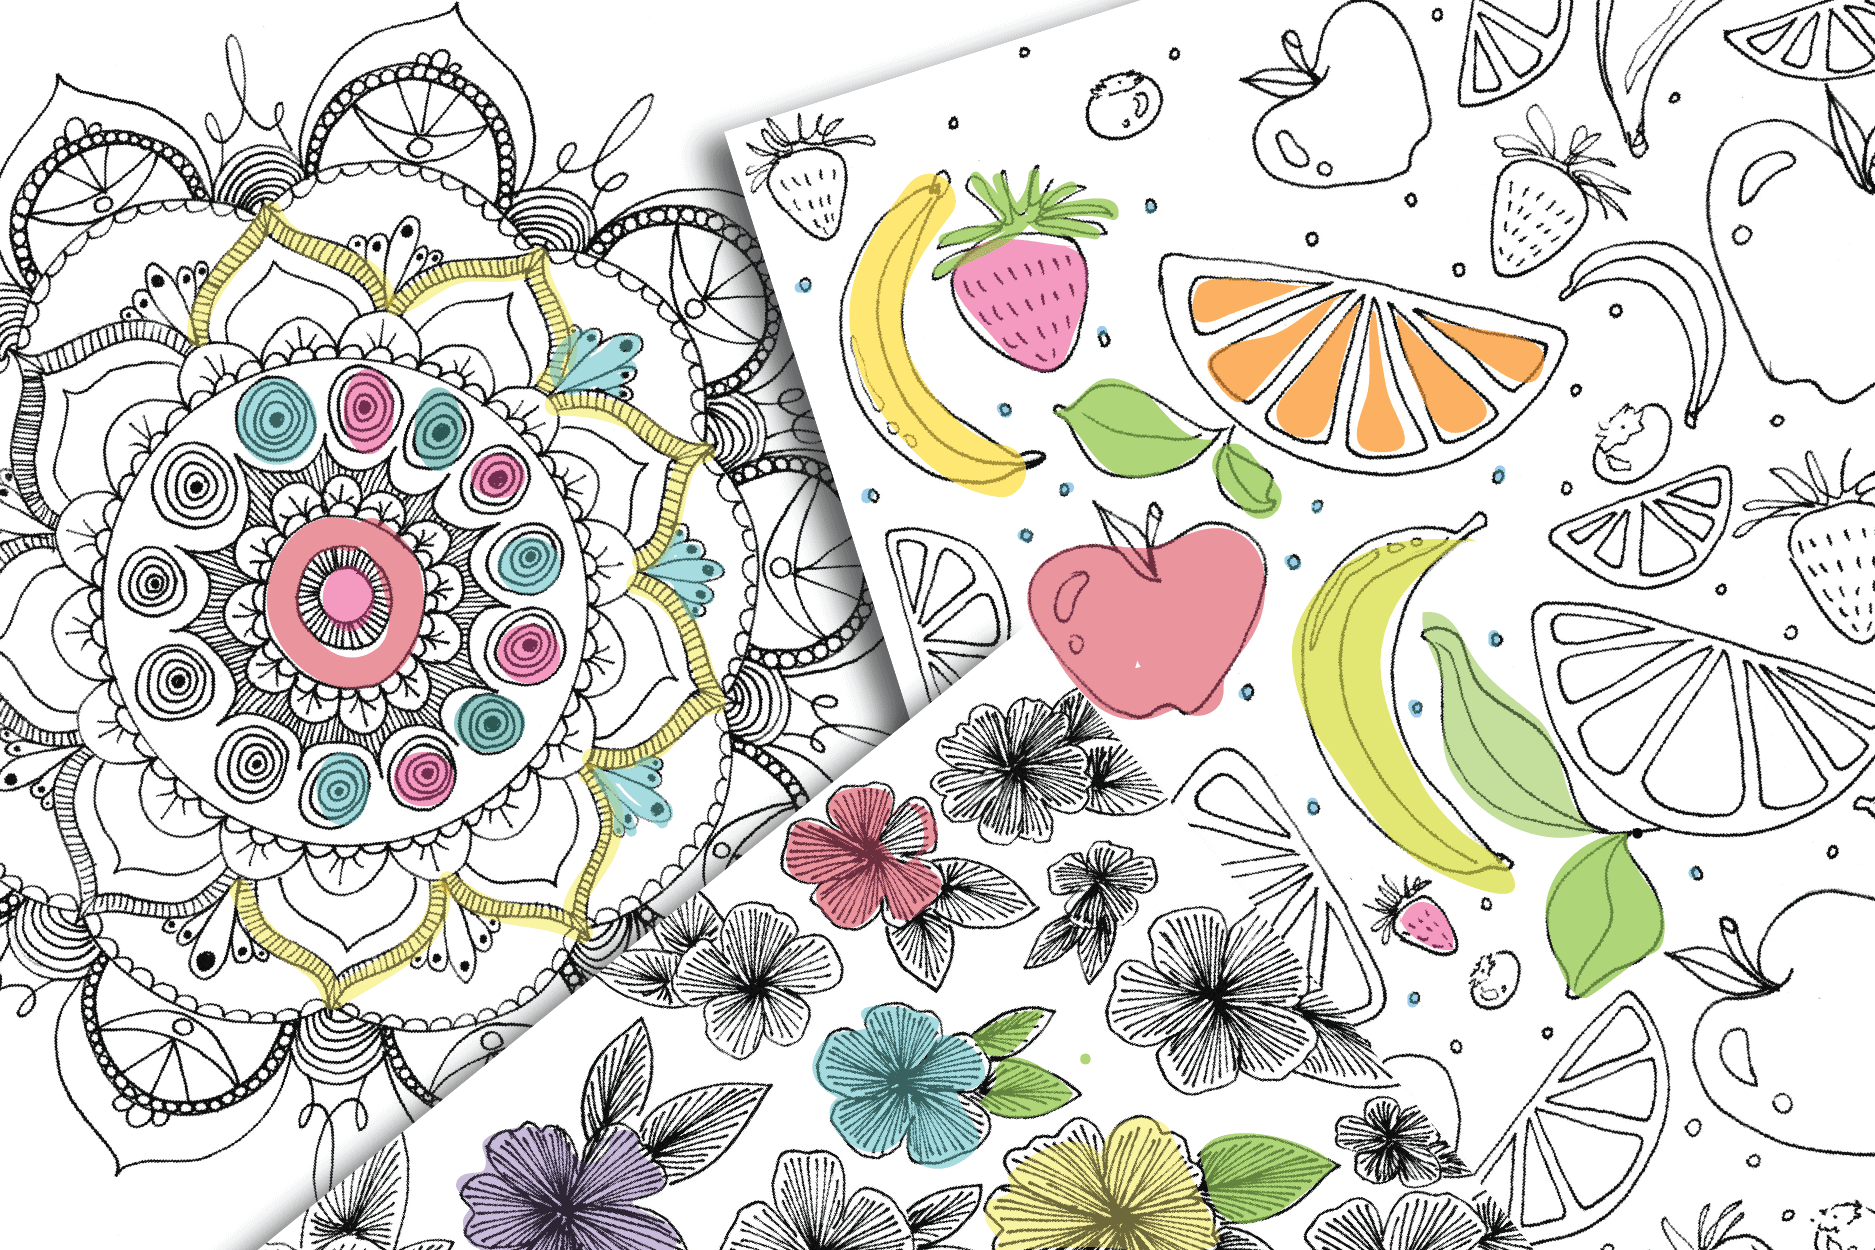 - 25 Printable Adult Coloring Pages You Can Print And Color (For Free!)